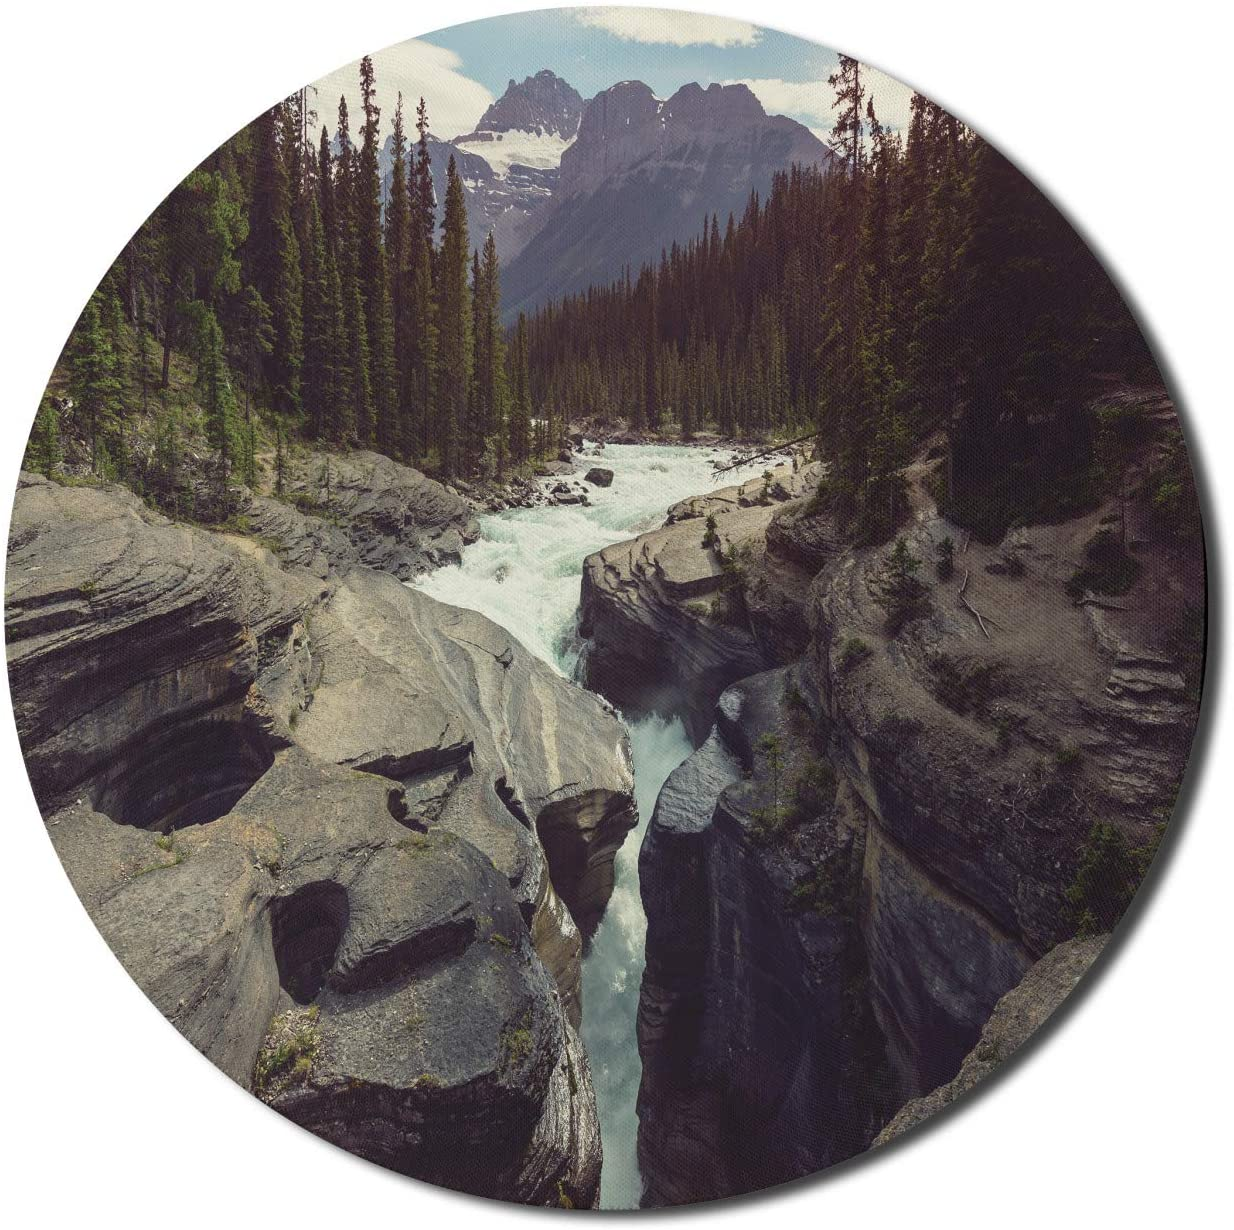 Lunarable Snow Mountain Mouse Pad for Computers, Athabasca River Image Flowing Through Jasper National Park of Alberta Canada, Round Non-Slip Thick Rubber Modern Gaming Mousepad, 8